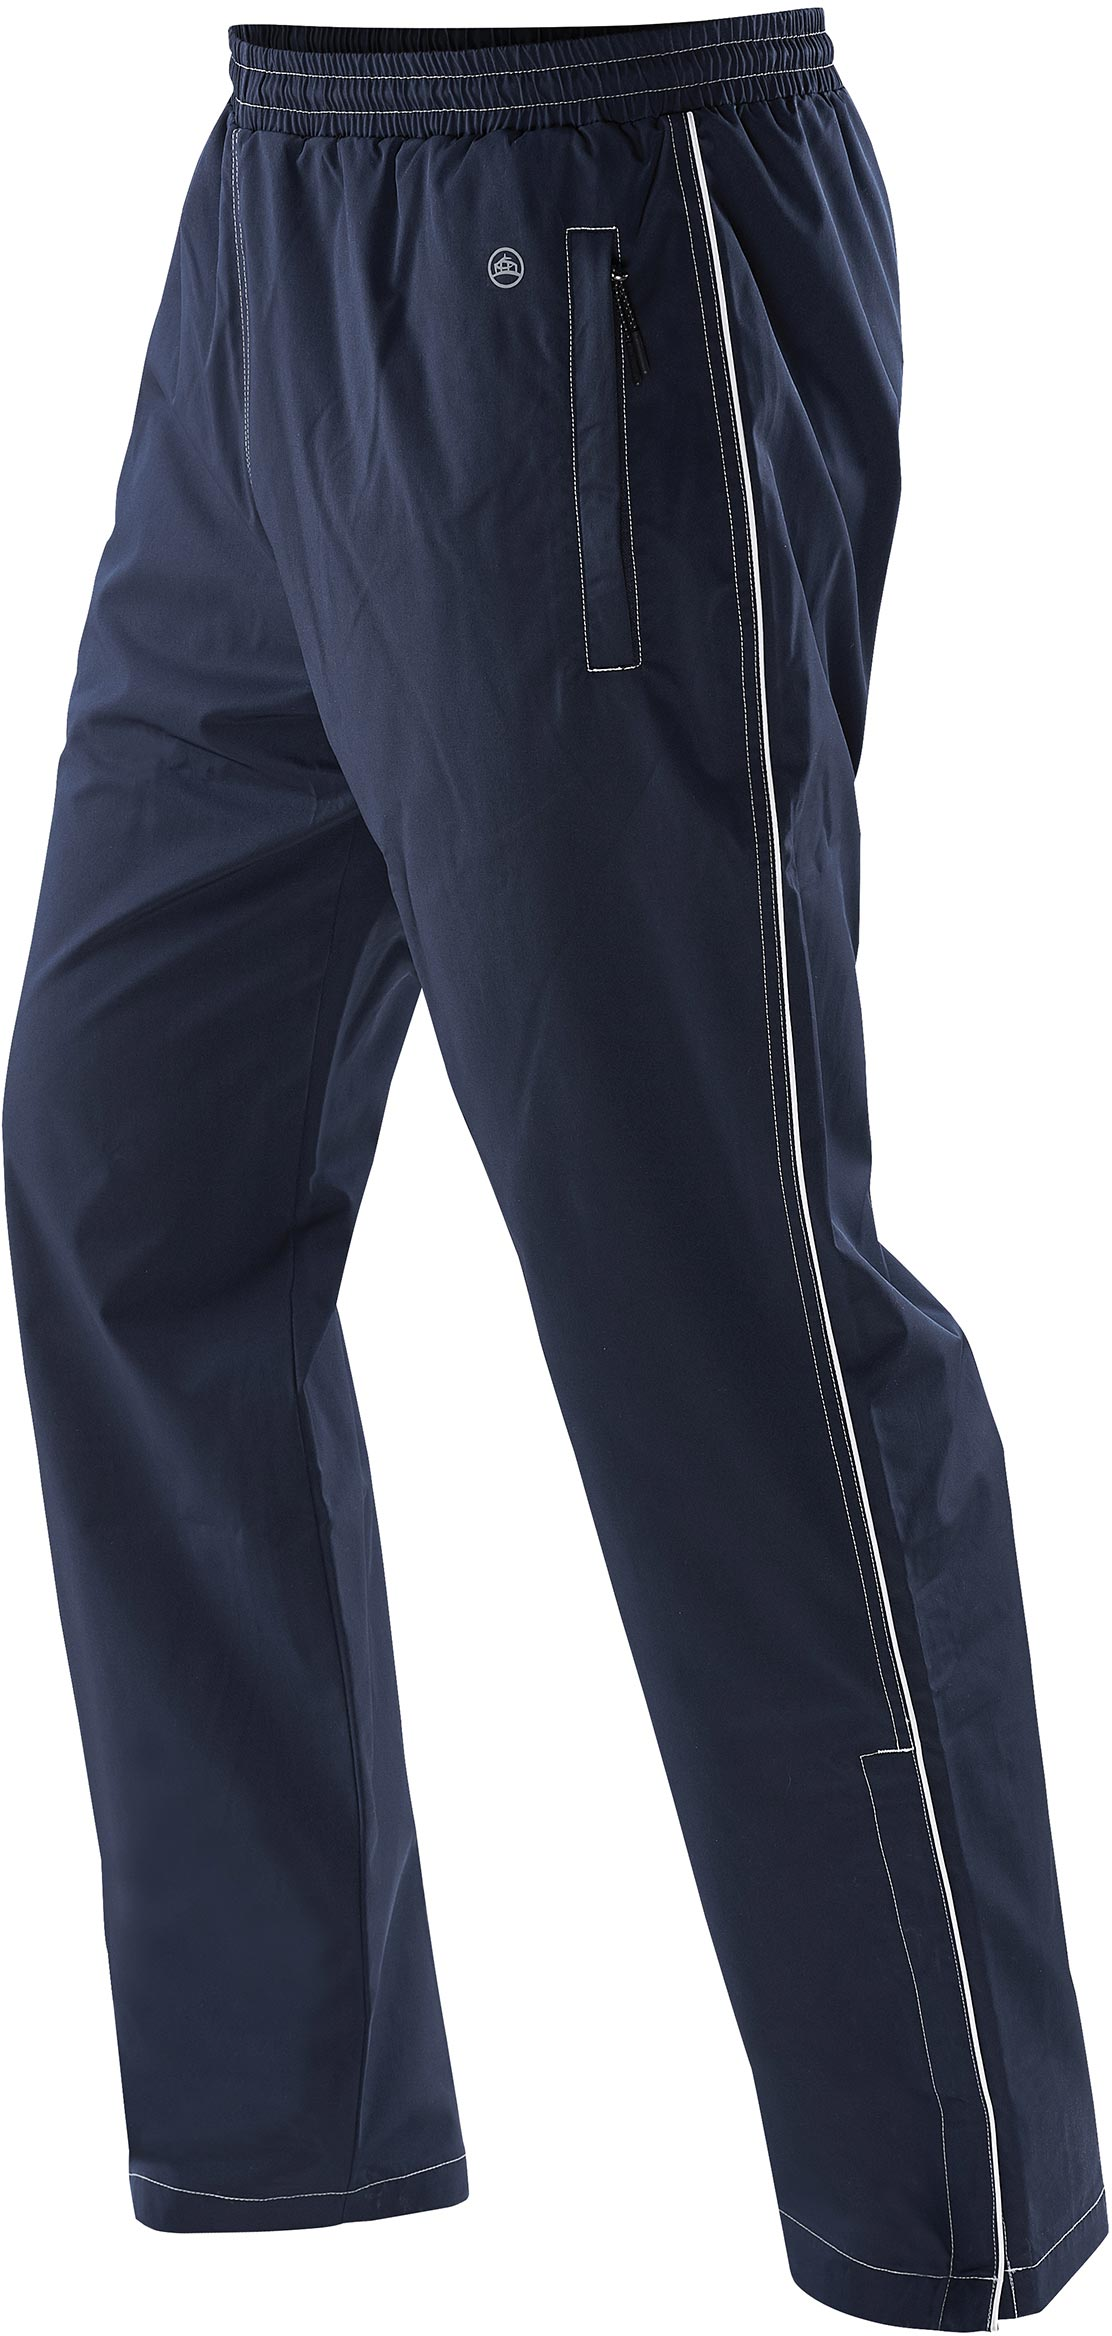 STORMTECH YOUTH WARRIOR TRAINING PANT